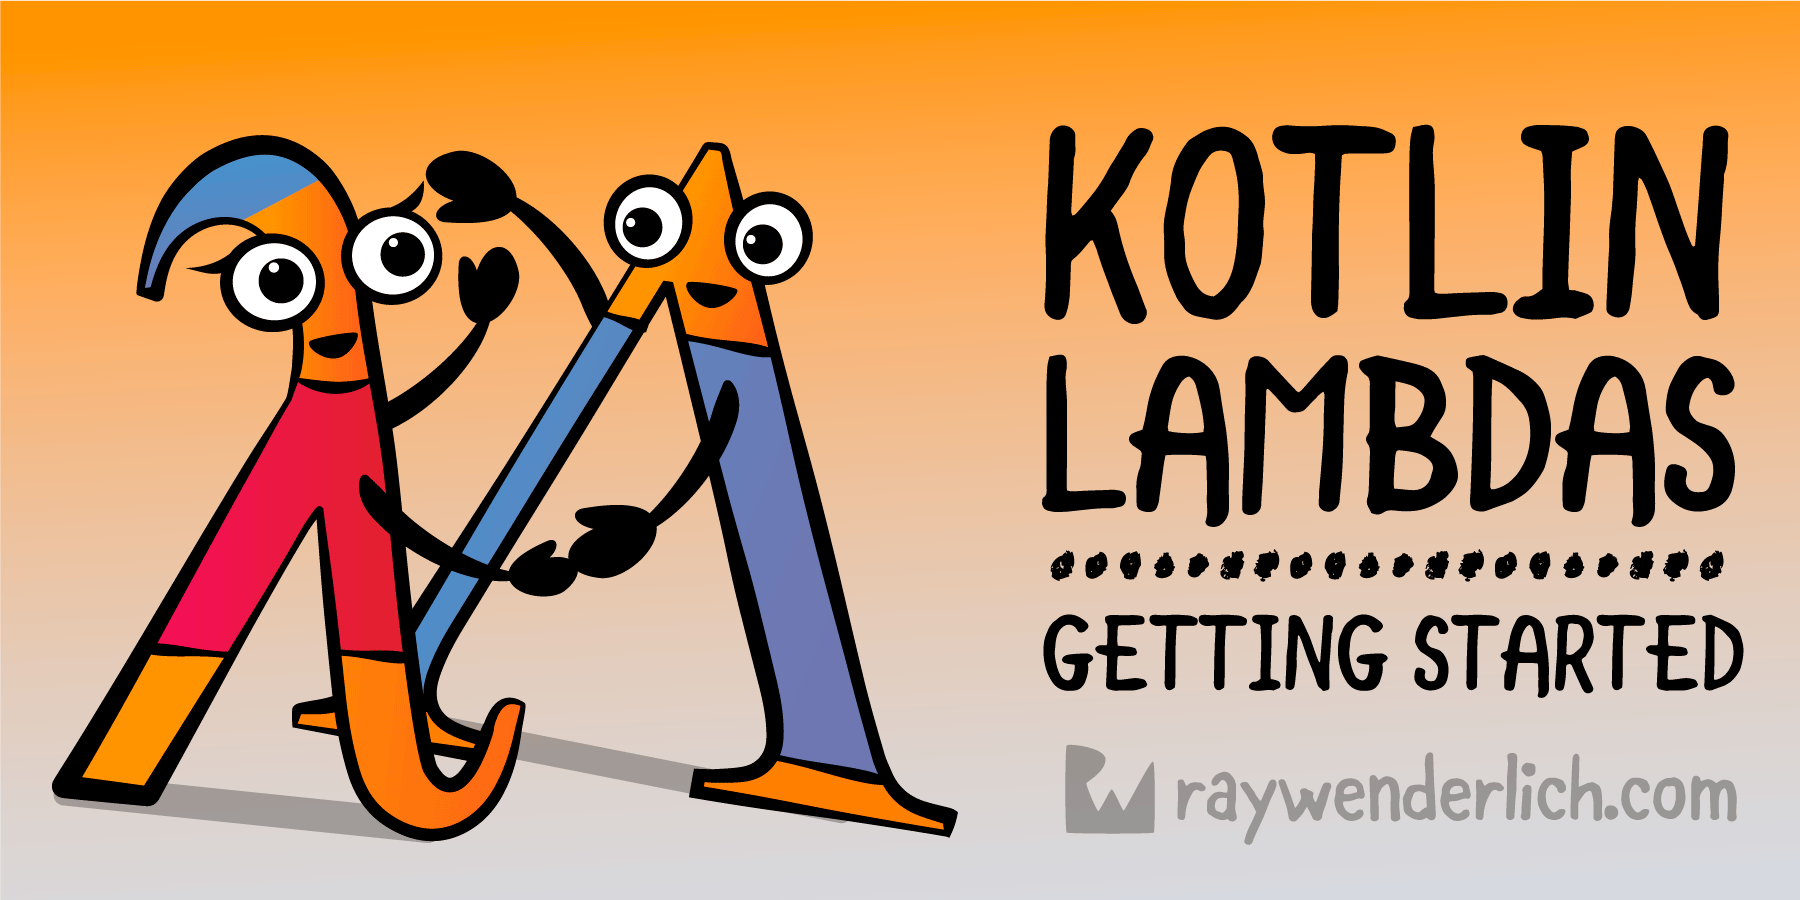 Introduction to Kotlin Lambdas: Getting Started